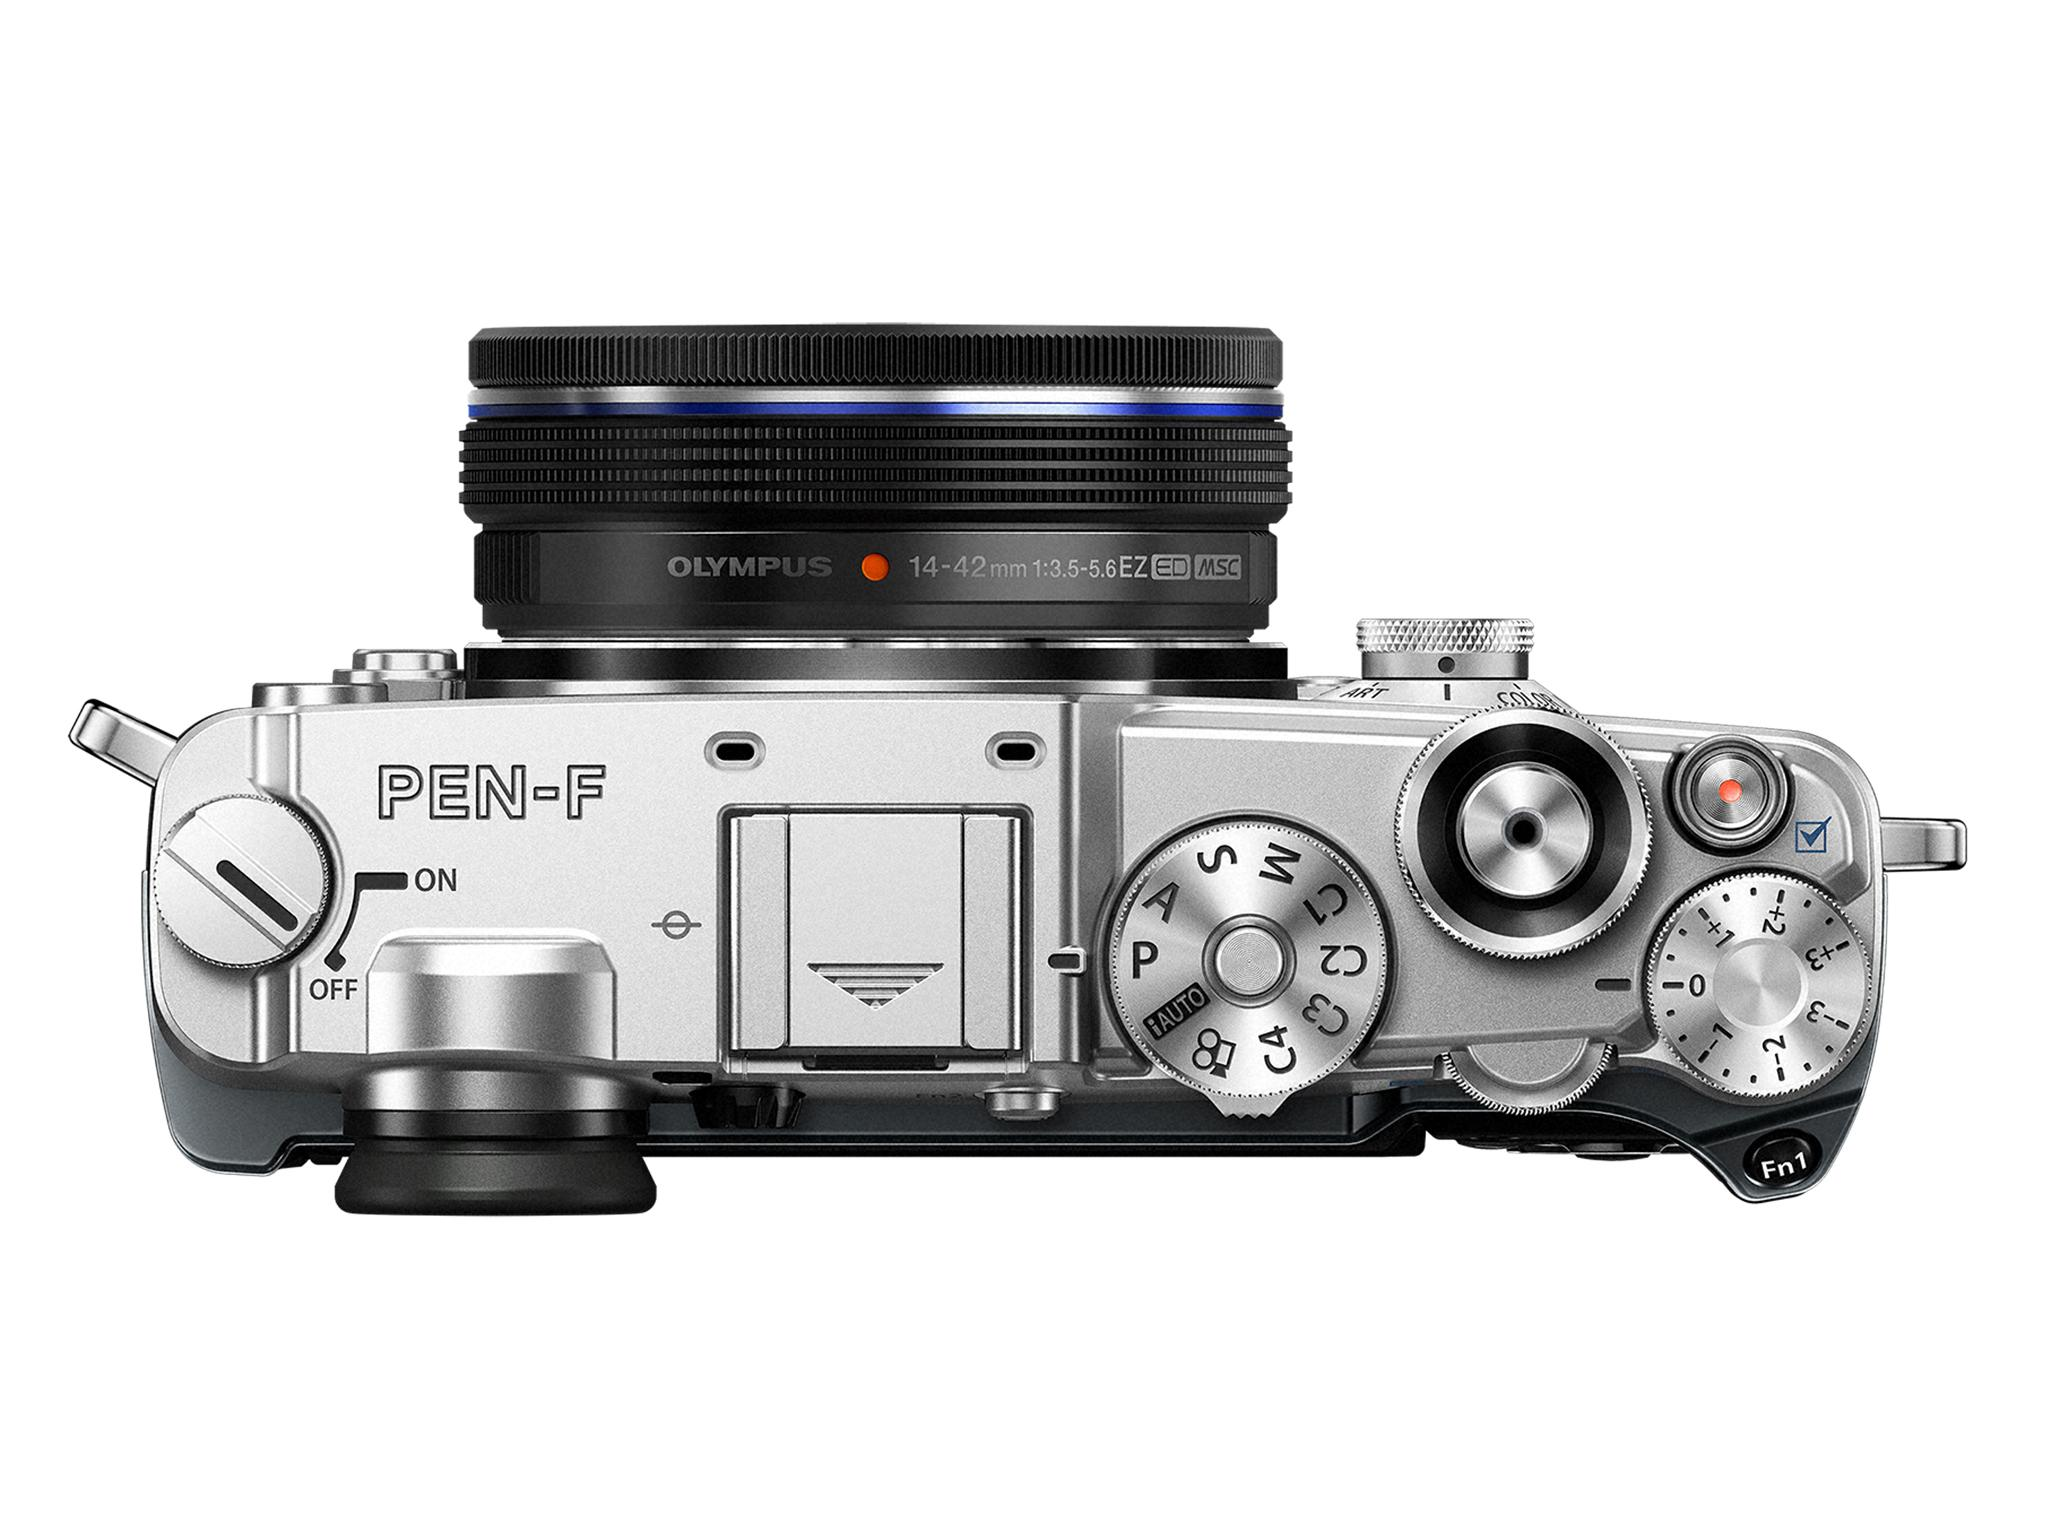 10 best compact system cameras | The Independent